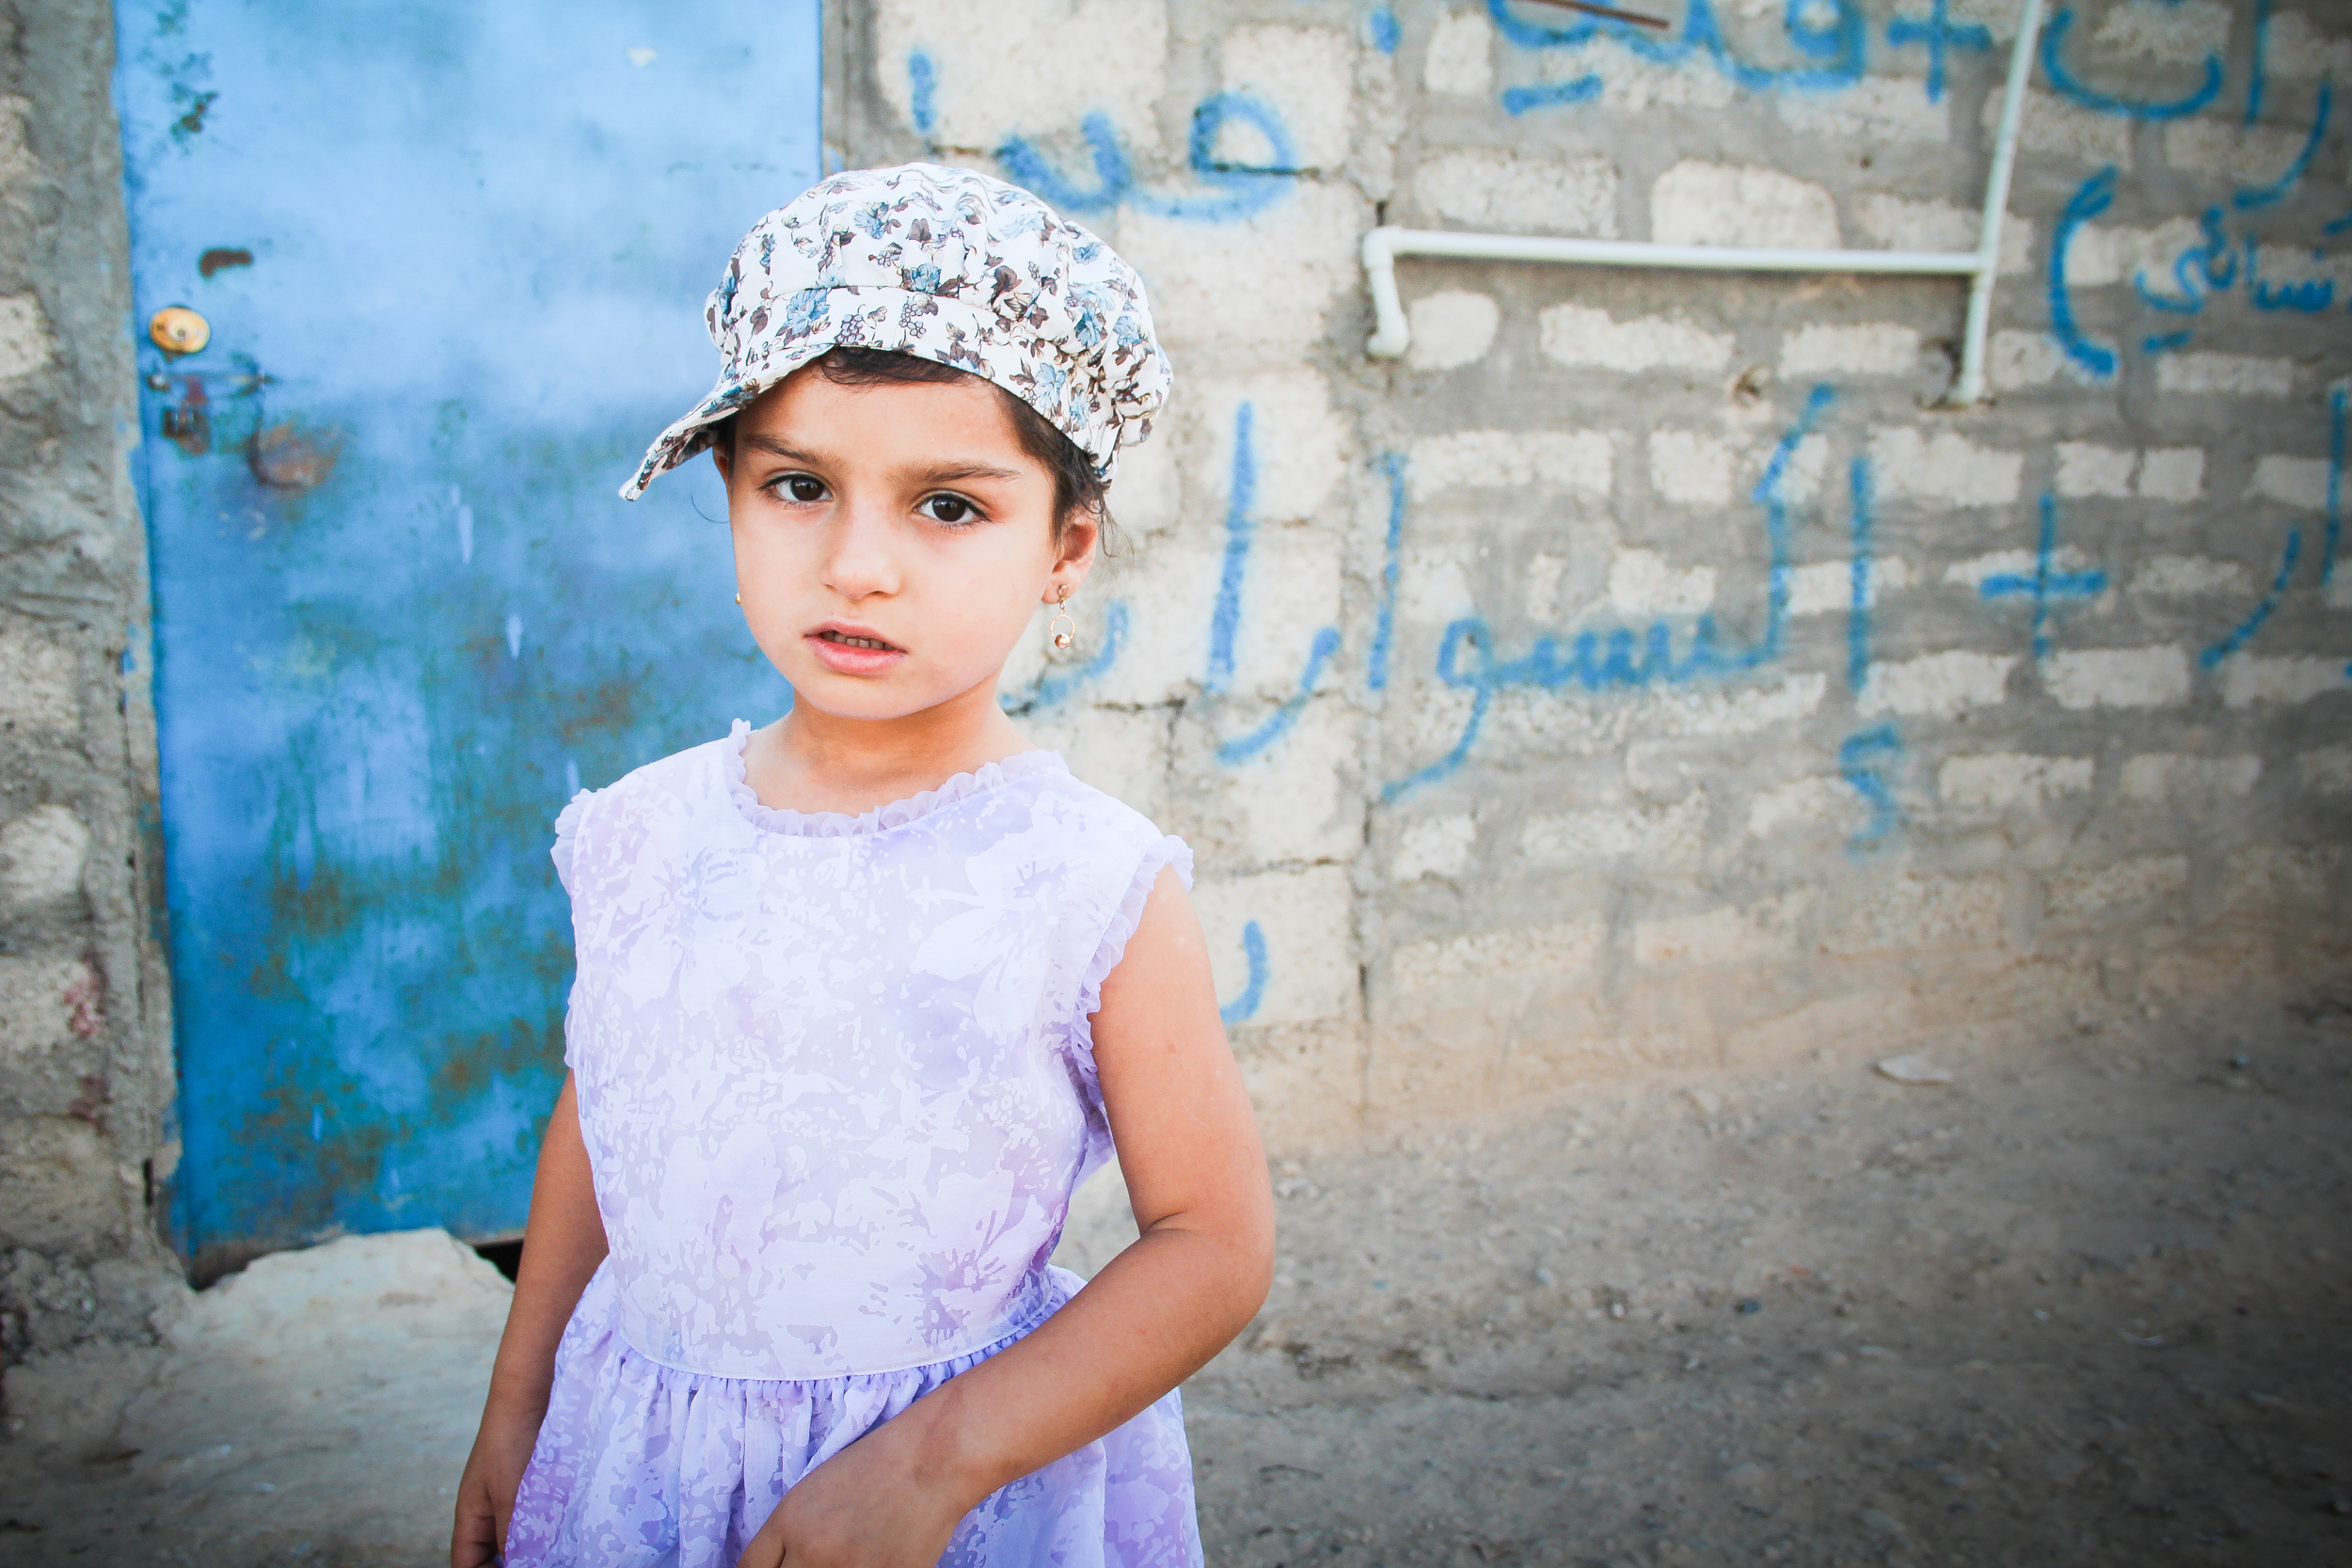 A young girl in Domiz refugee camp, Iraqi Kurdistan / For the Iraq mission of the International Organization for Migration